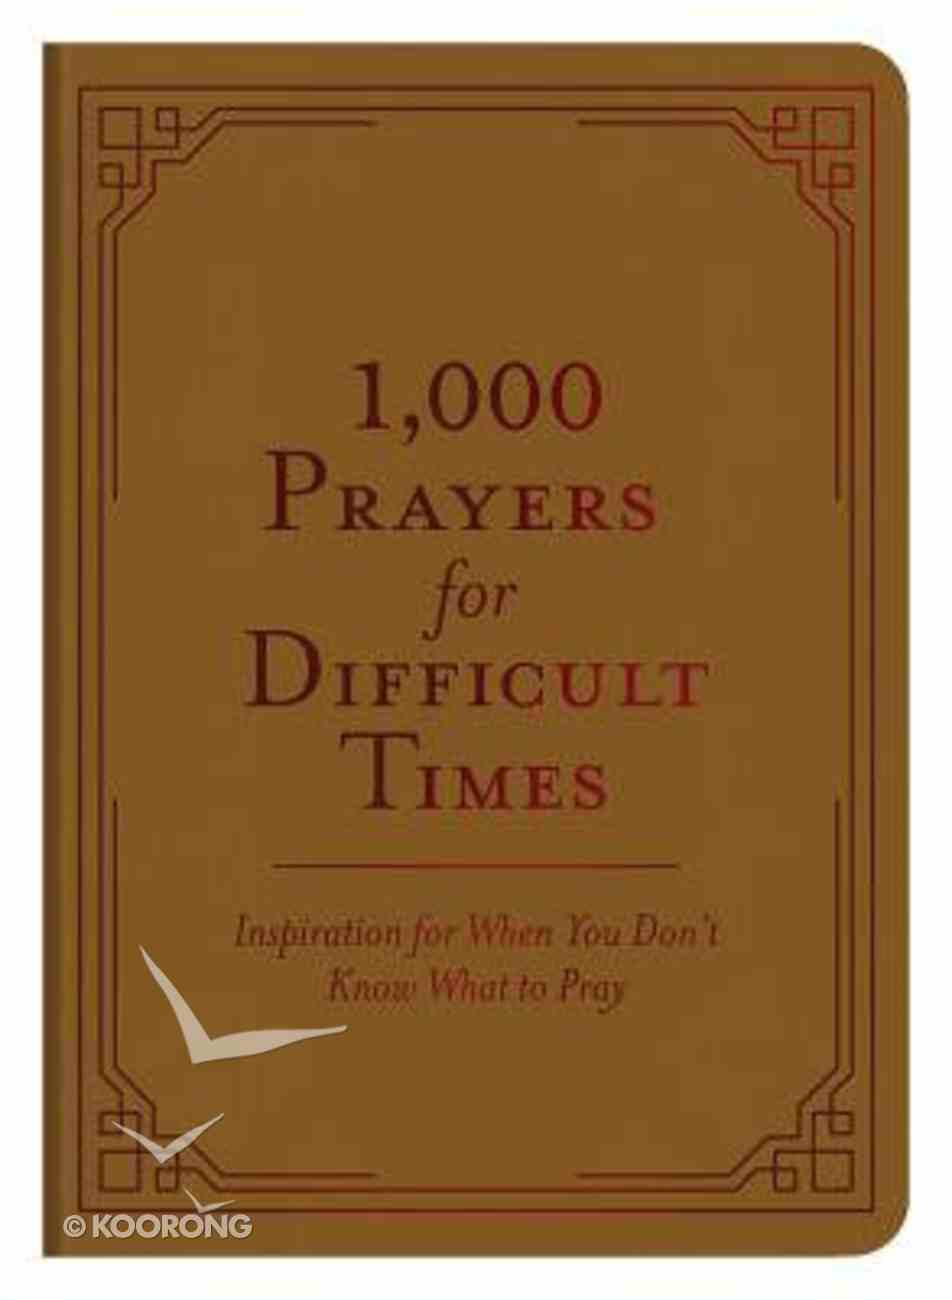 1,000 Prayers For Difficult Times: Inspiration For When You Don't Know What to Pray Paperback